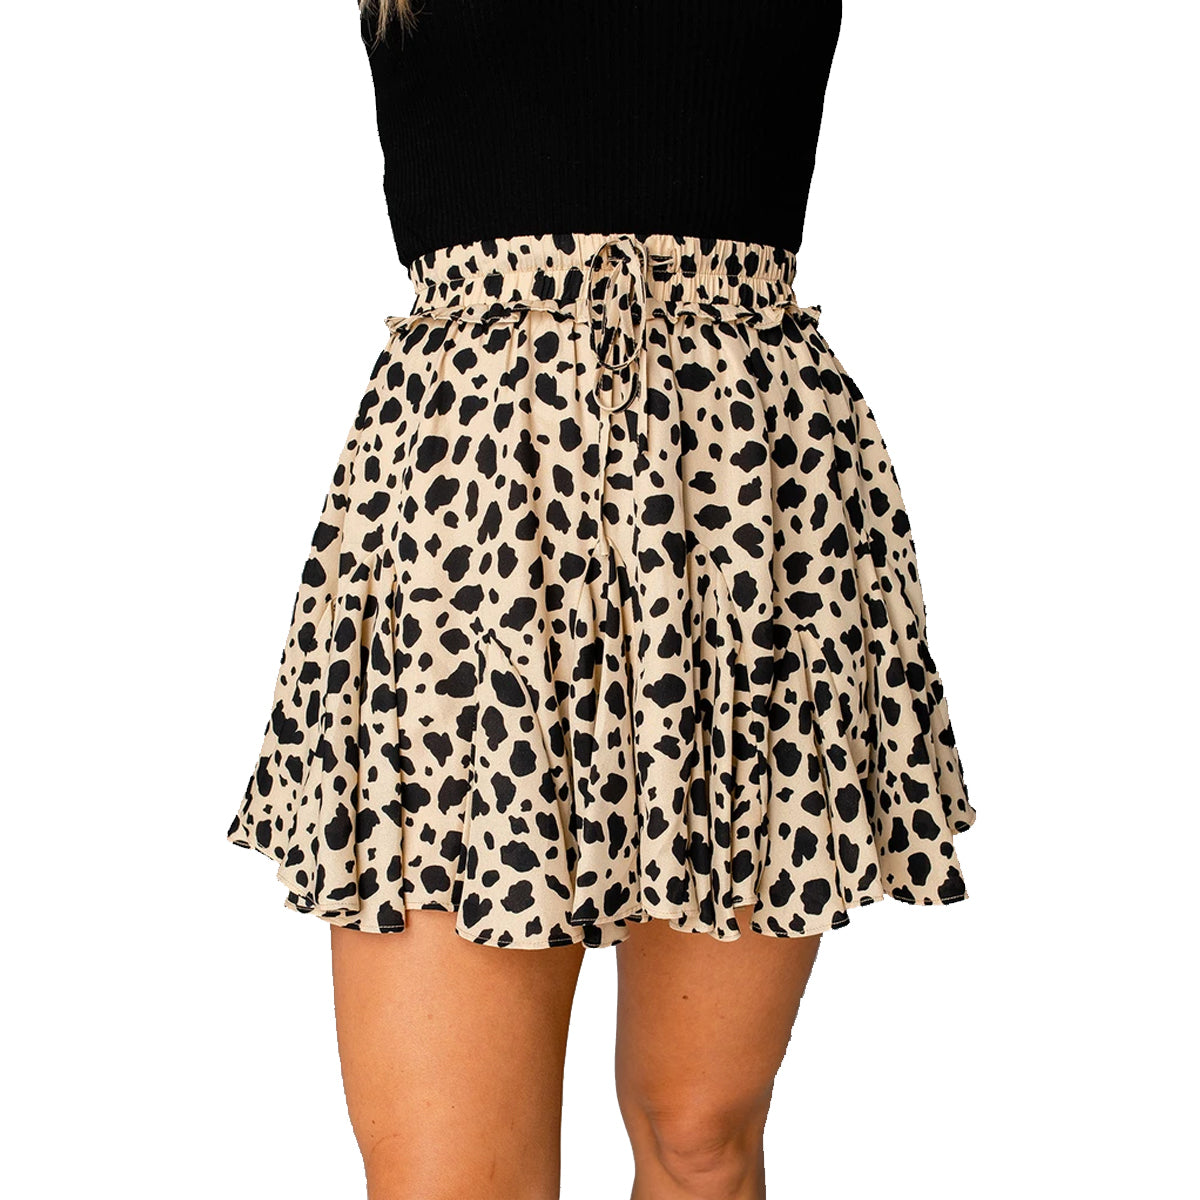 Buddy Love Women's Presley Ruffled Mini Skirt - Speckled